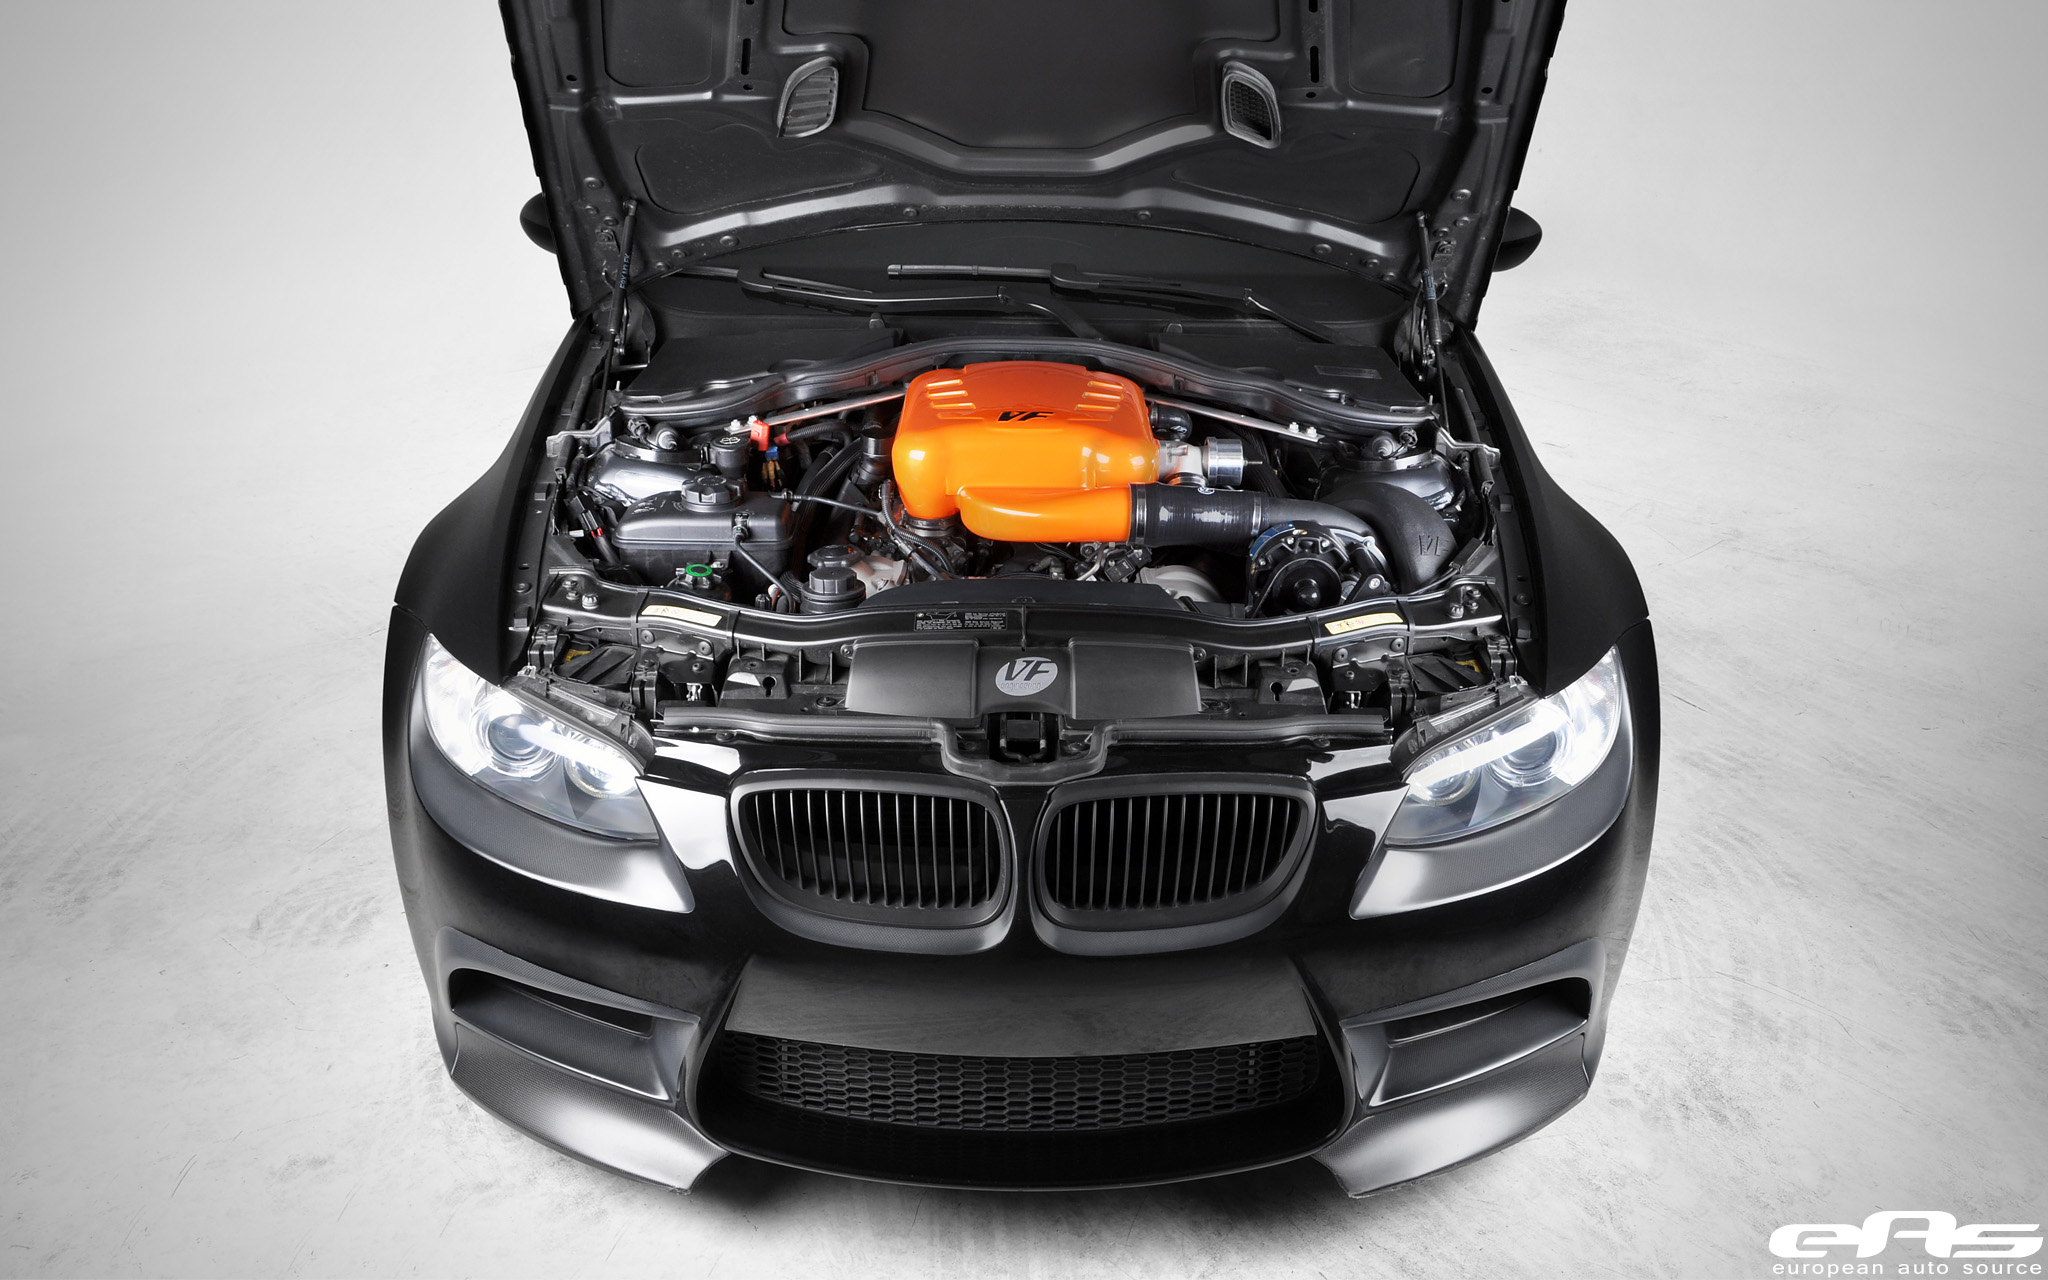 Orange Fever S Vf620 Supercharged E90 M3 Hits The Streets Bmw Performance Parts Amp Services